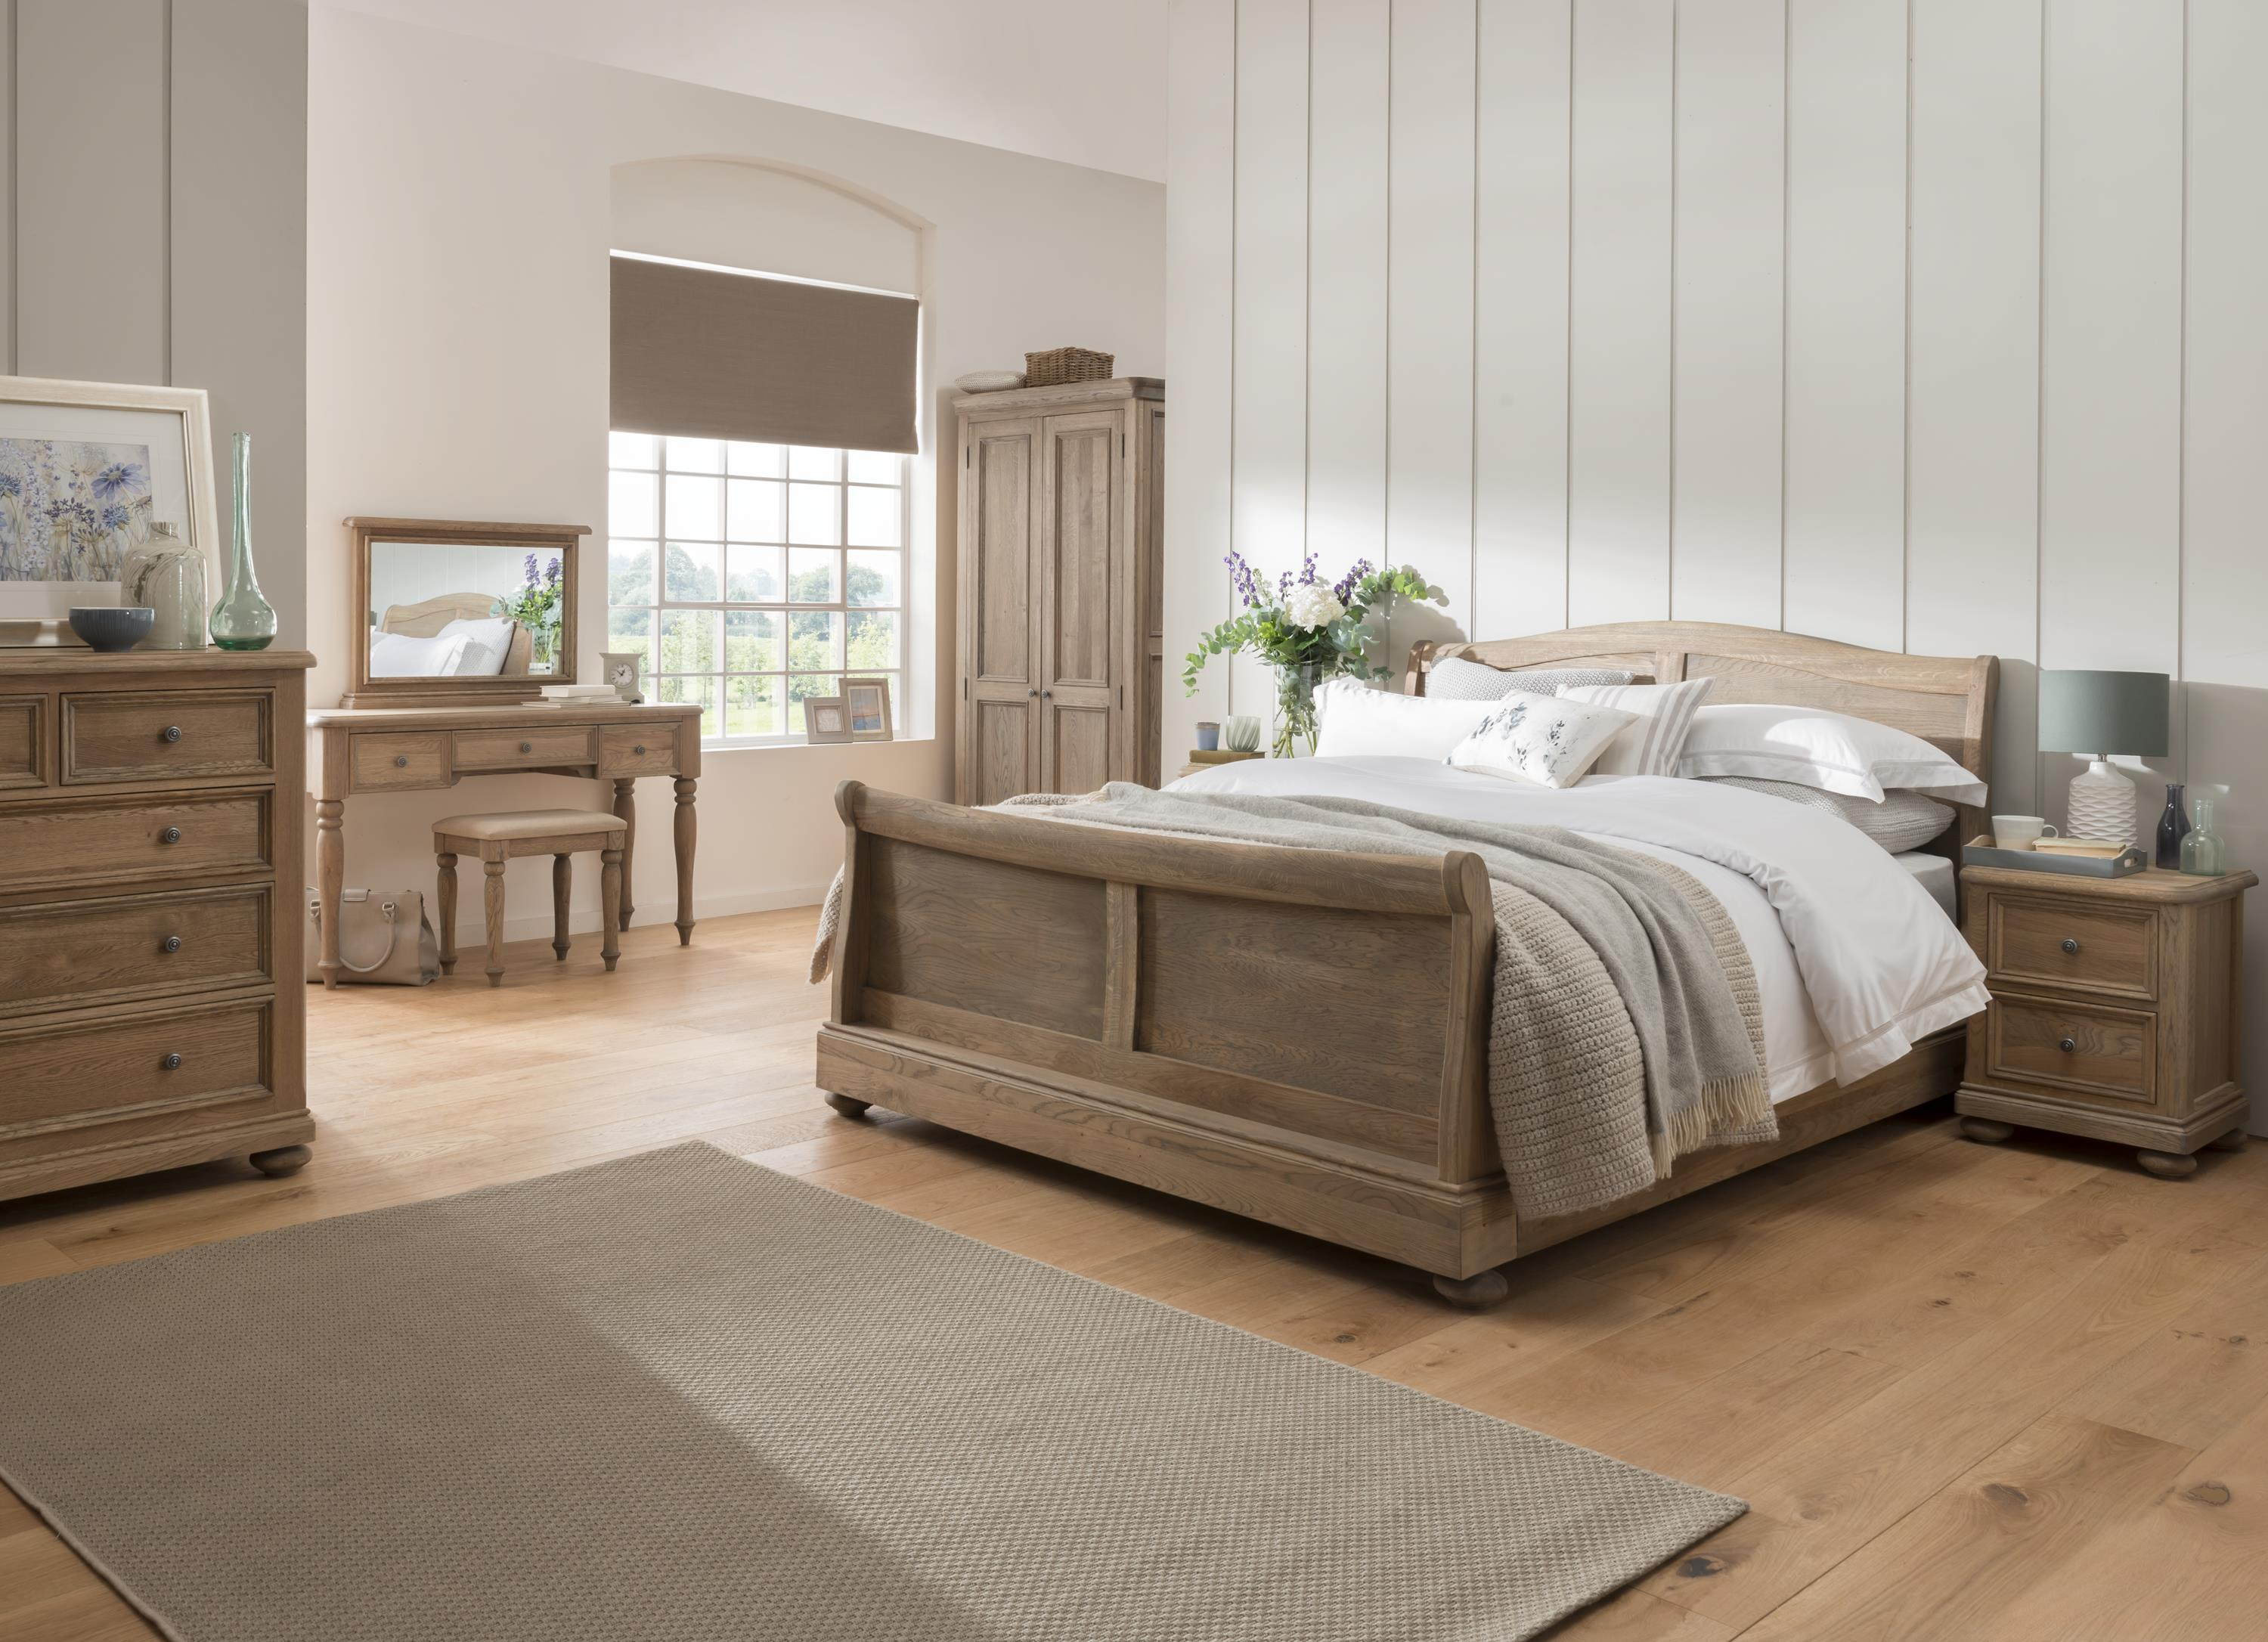 Huntington Bedroom Furniture Buy The Huntington Collection Online Or In Store Bedco Isle Of Man